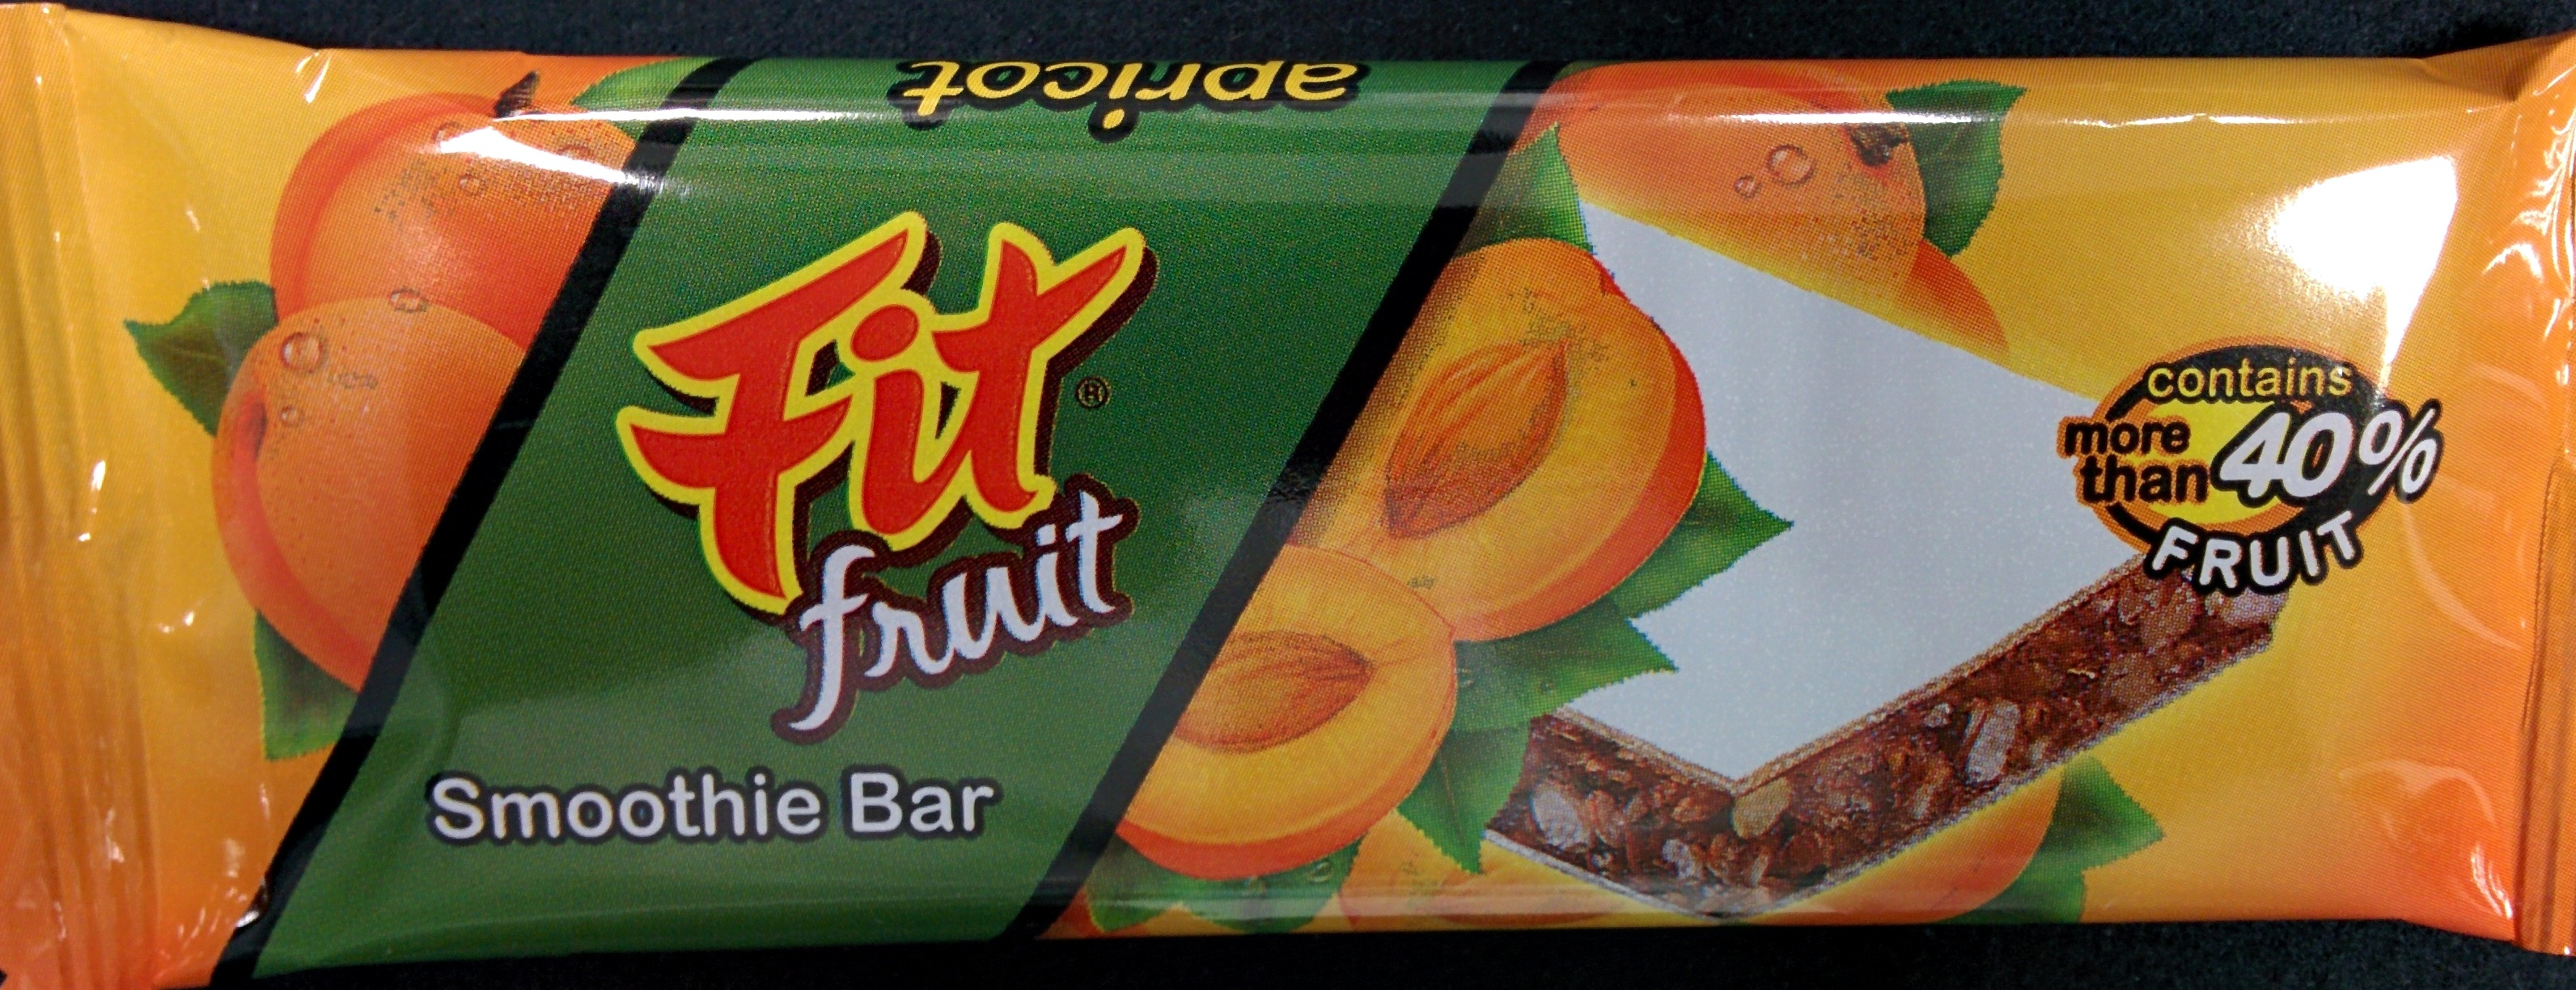 Fit fruit Smoothie Bar - Product